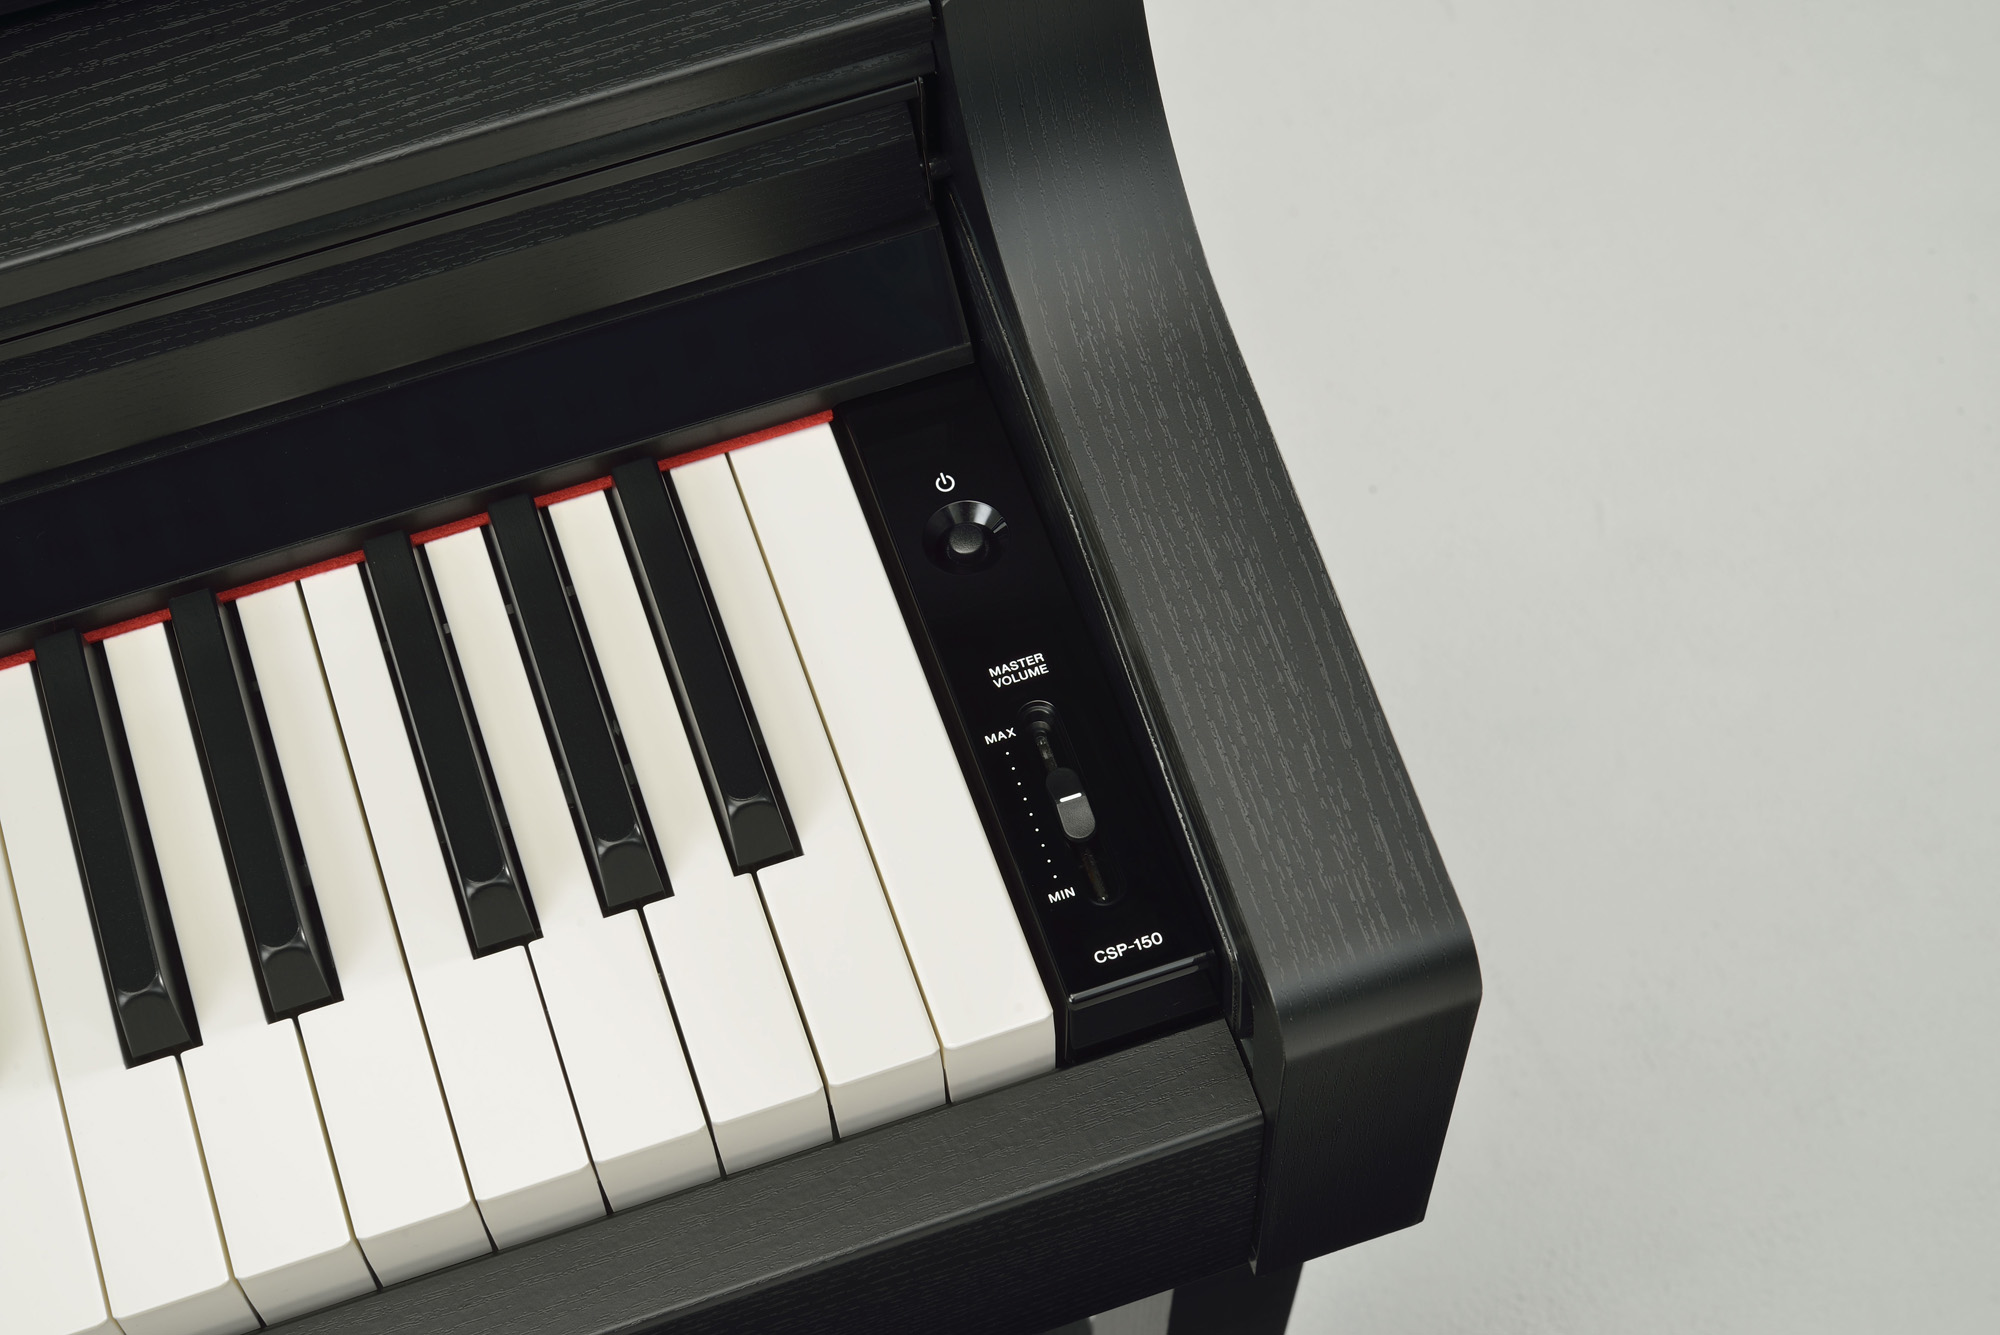 yamaha csp 170 clavinova smart digital piano in black. Black Bedroom Furniture Sets. Home Design Ideas